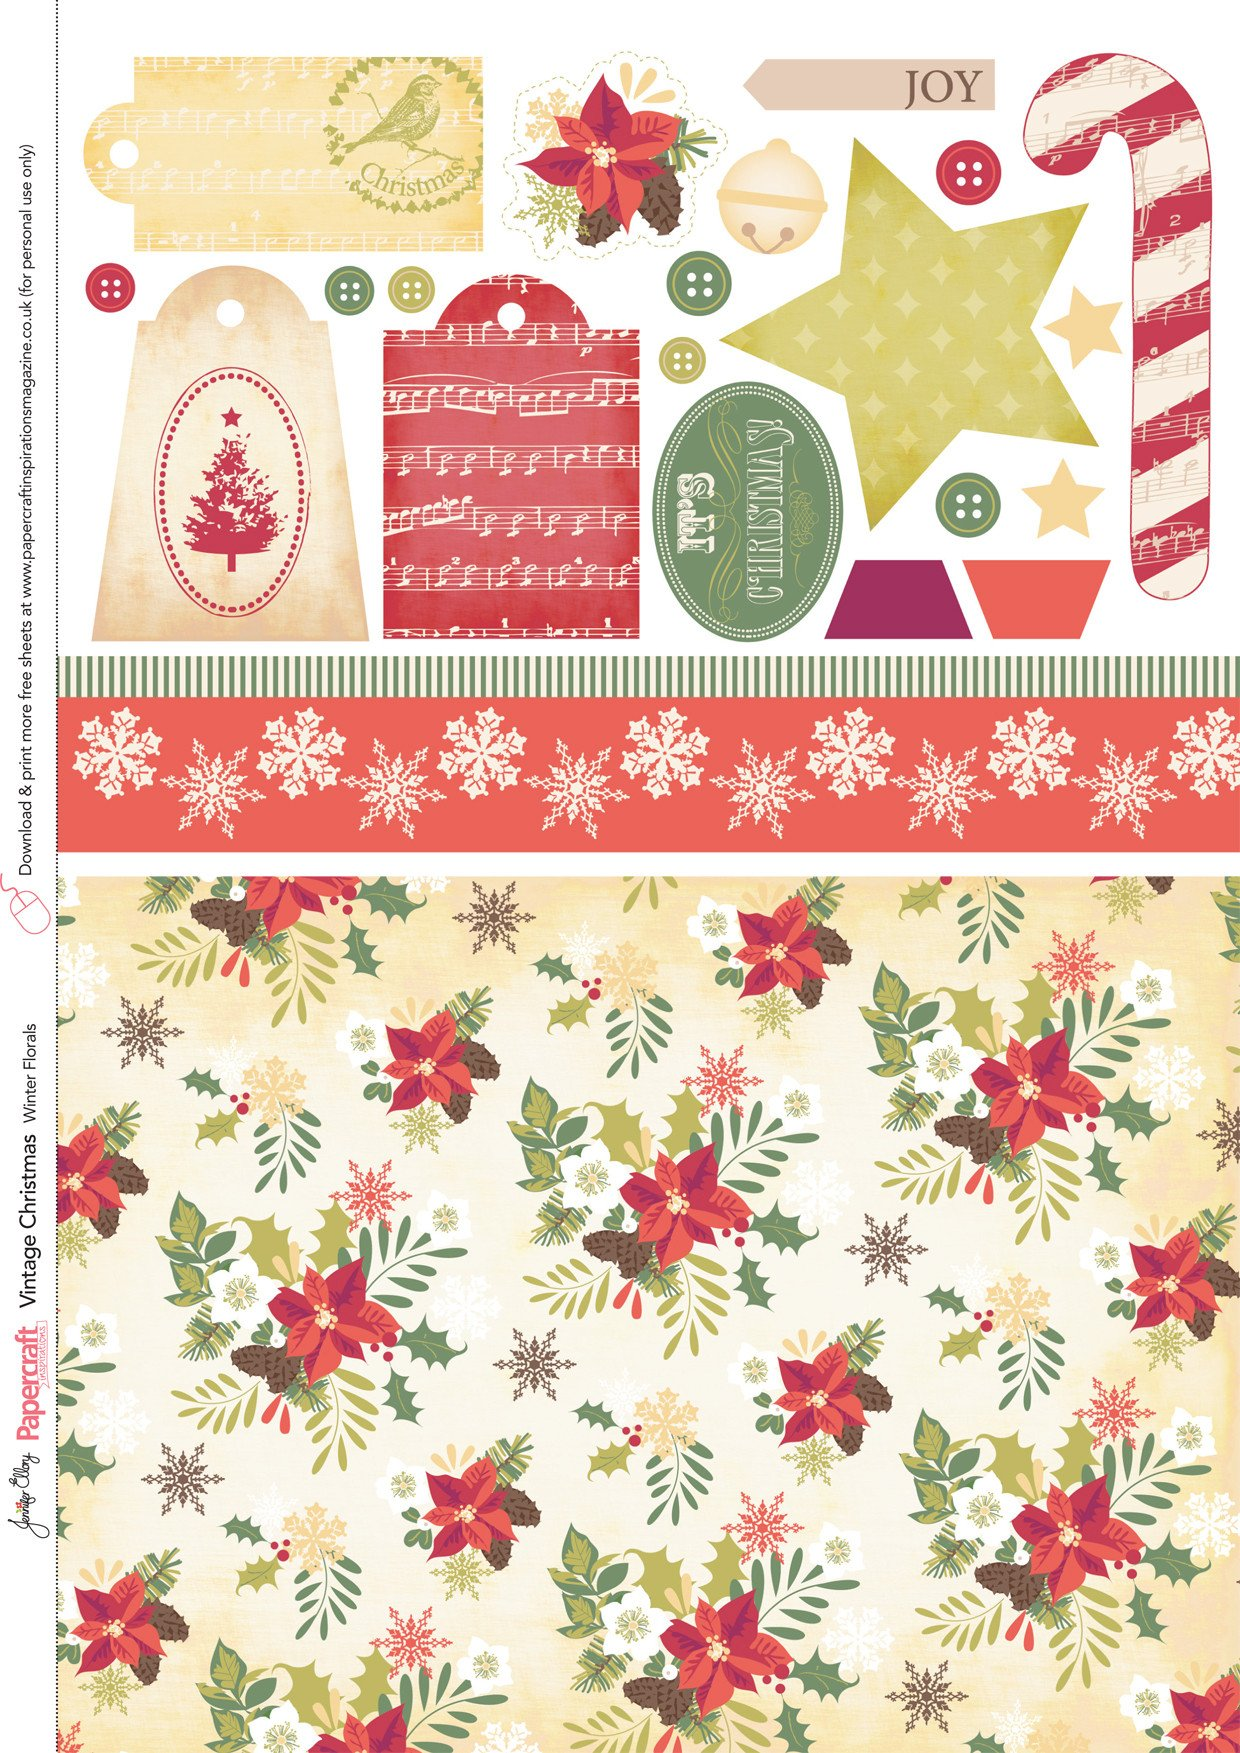 Free Printable Christmas Paper Free Vintage Christmas Papers From Papercraft Inspirations